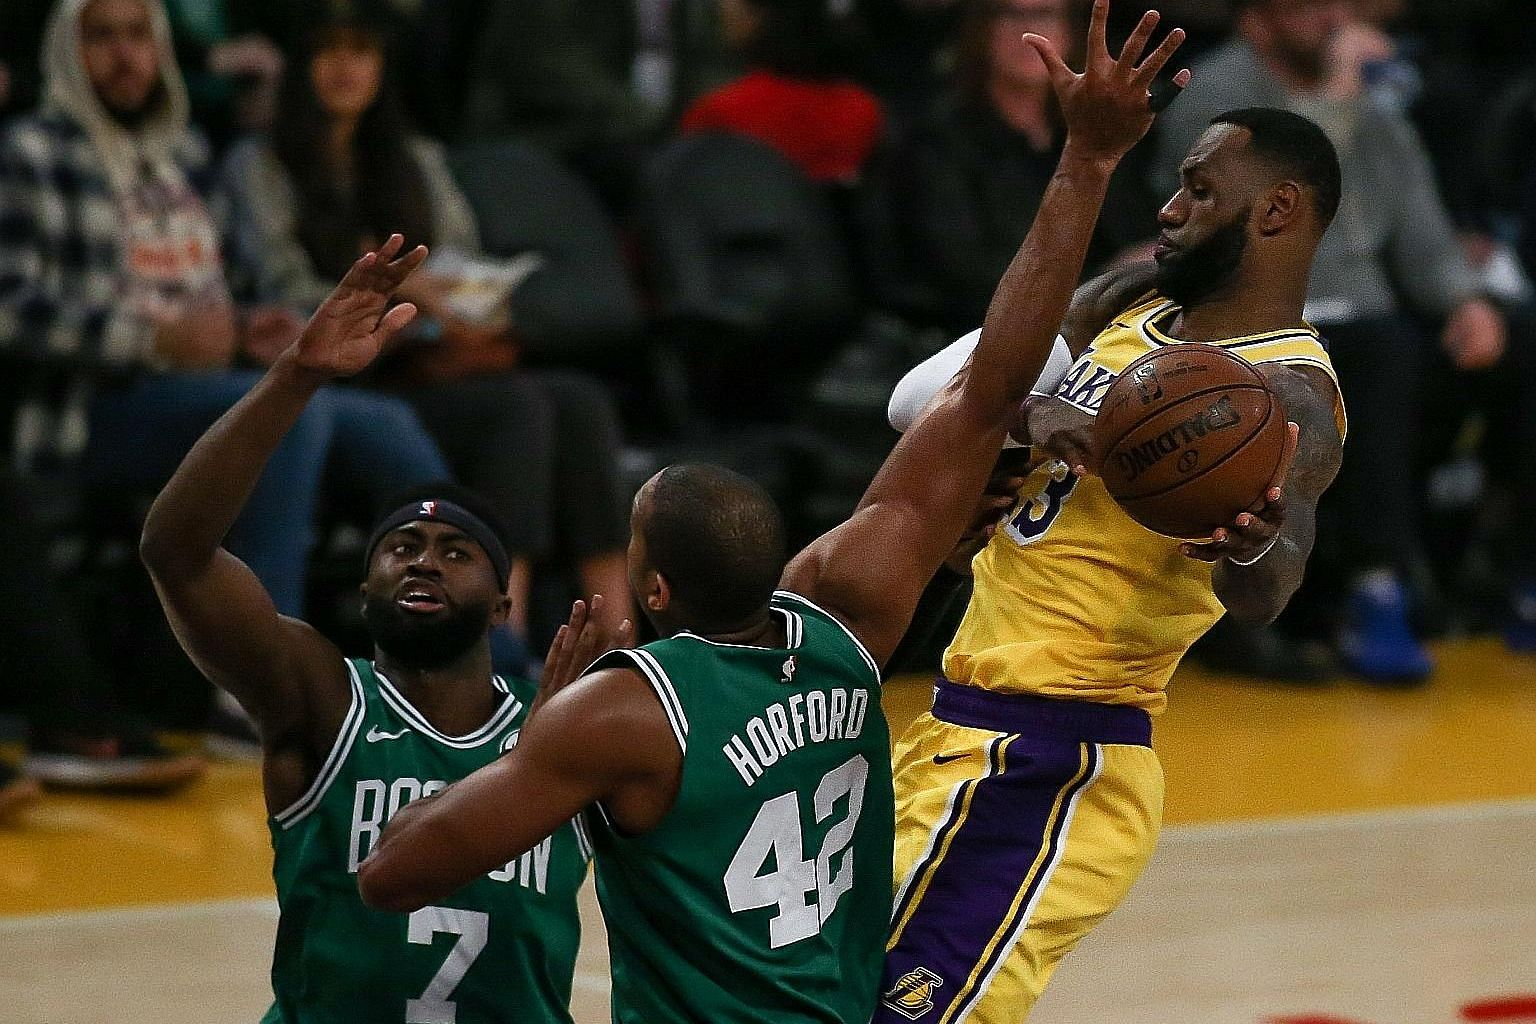 LeBron James double-teamed by Boston Celtics players Jaylen Brown and Al Horford at Staples Centre on Saturday. The Los Angeles Lakers lost 120-107 despite his triple-double.